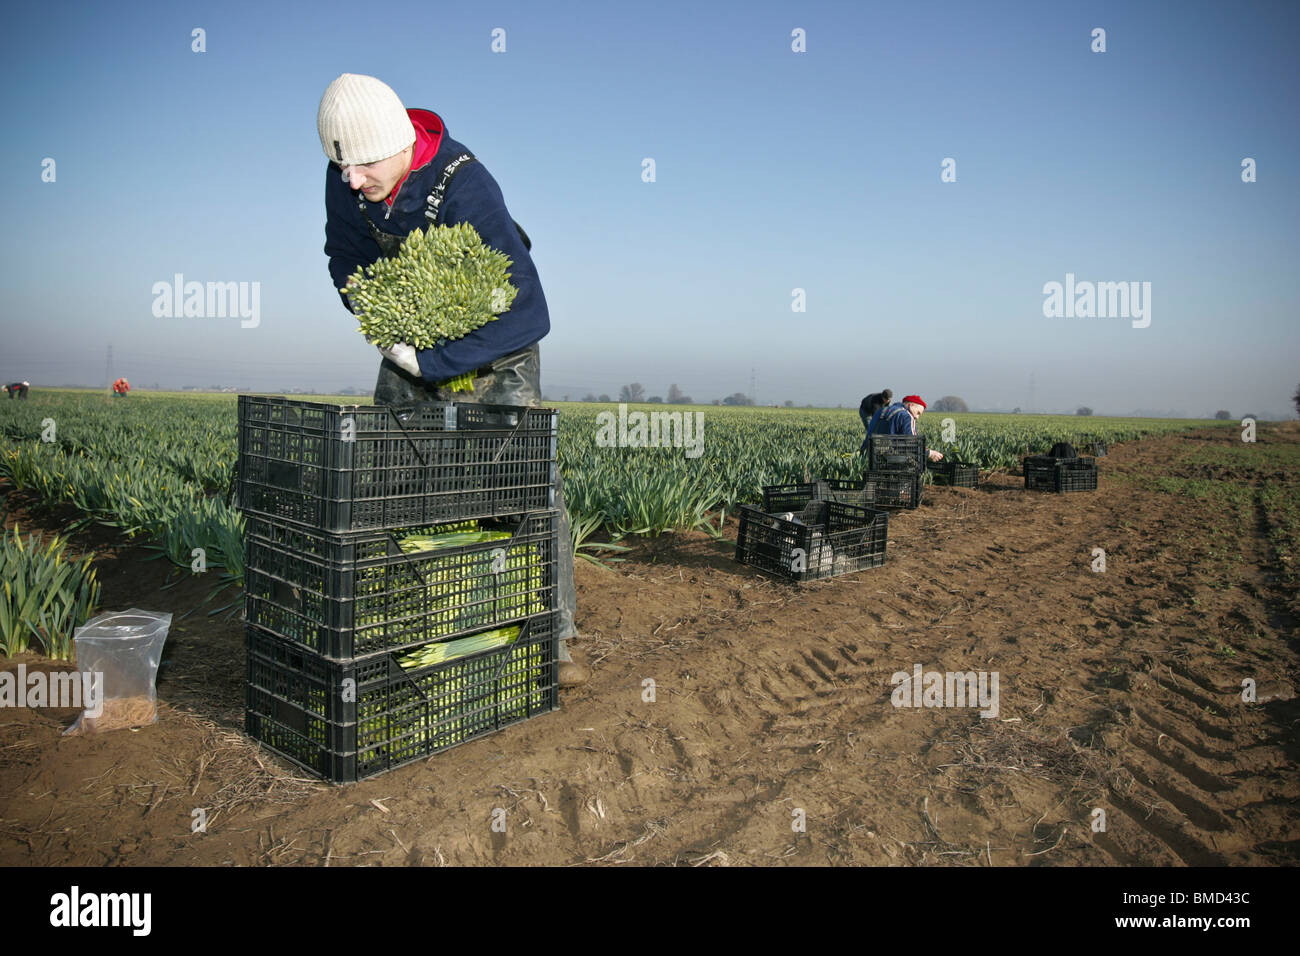 Migrant workers picking daffodils in the fields of the Linconshire Fens - Stock Image